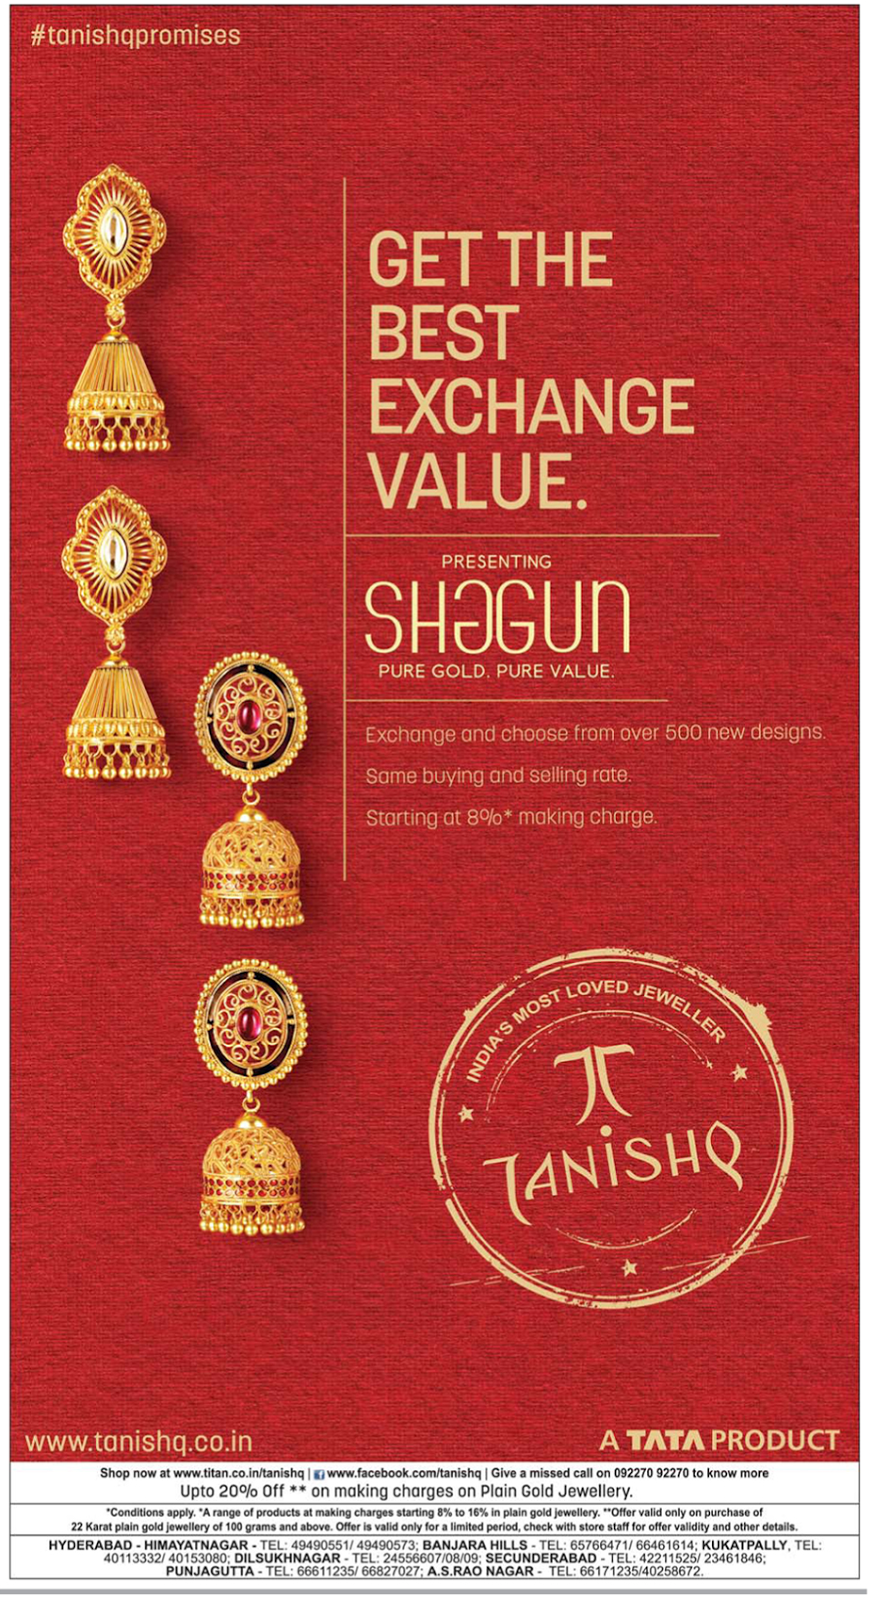 Get the Best exchange value to your gold | Tanishq | Gold discount offers for Akshaya Tritiya | April 2016 discount offers